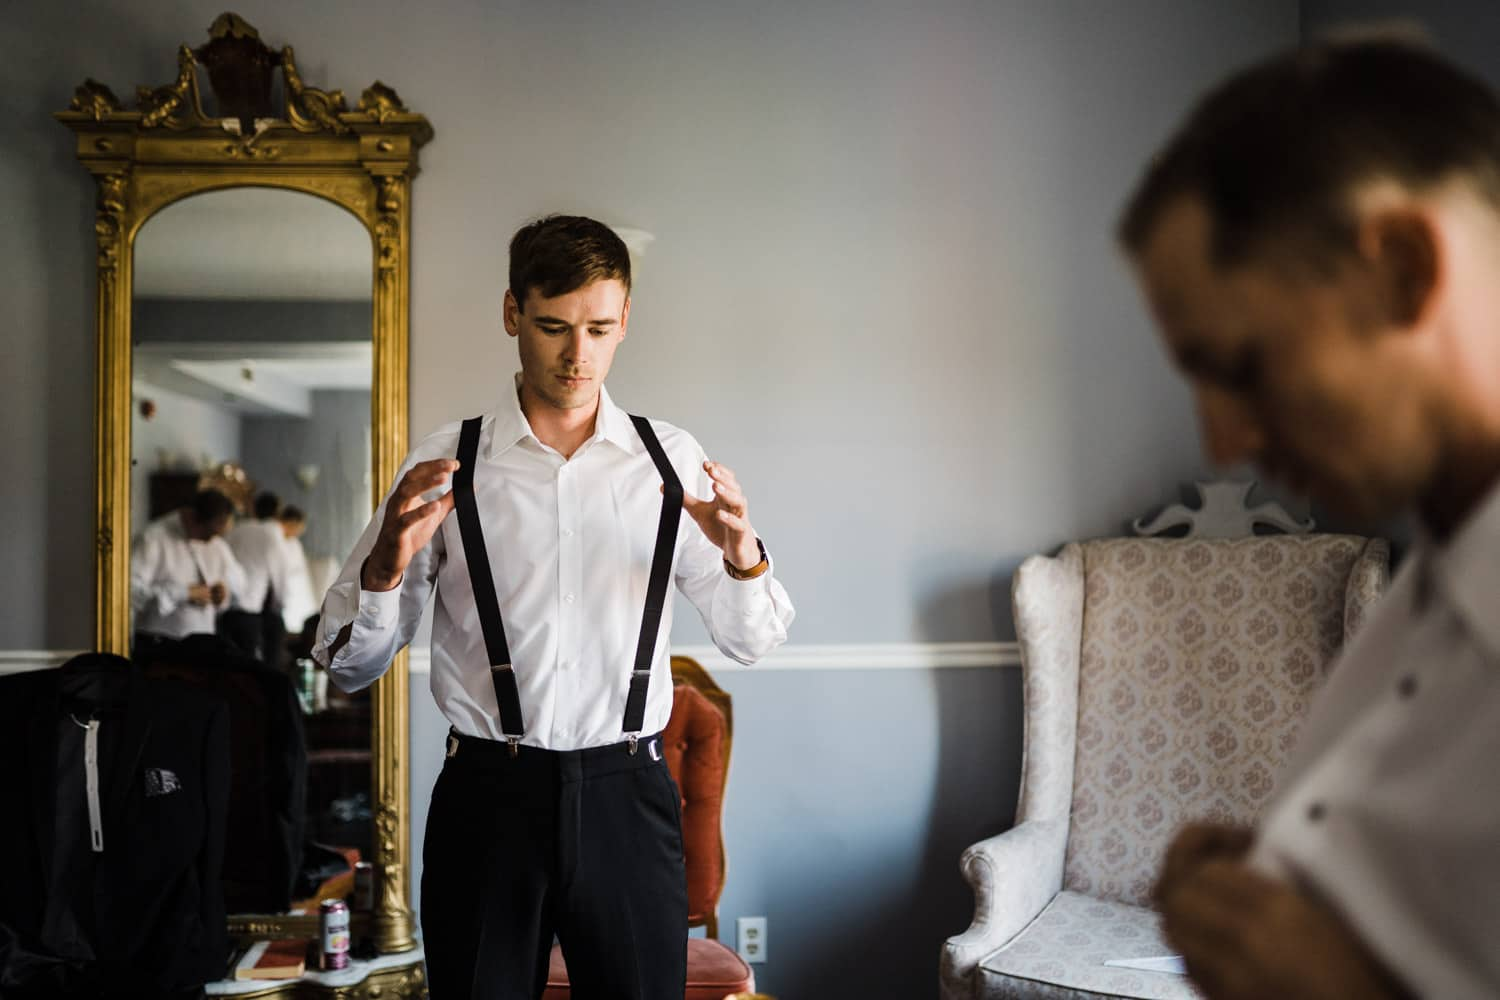 groomsmen plays with suspenders while getting ready